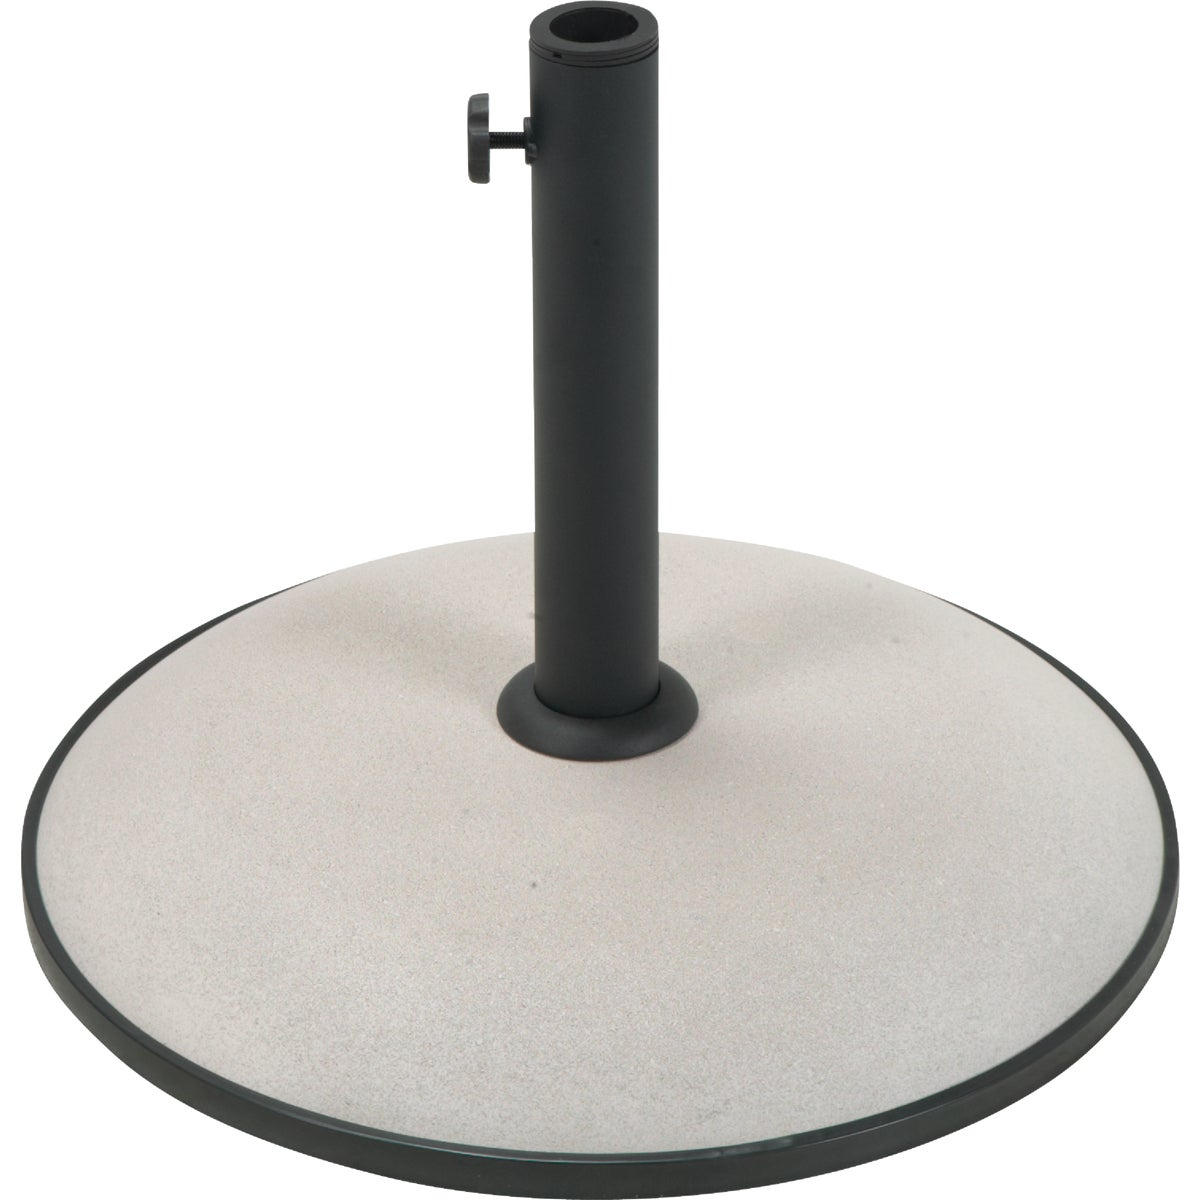 33# TAN CONCRETE BASE - SL-USC-01C by Do it Best